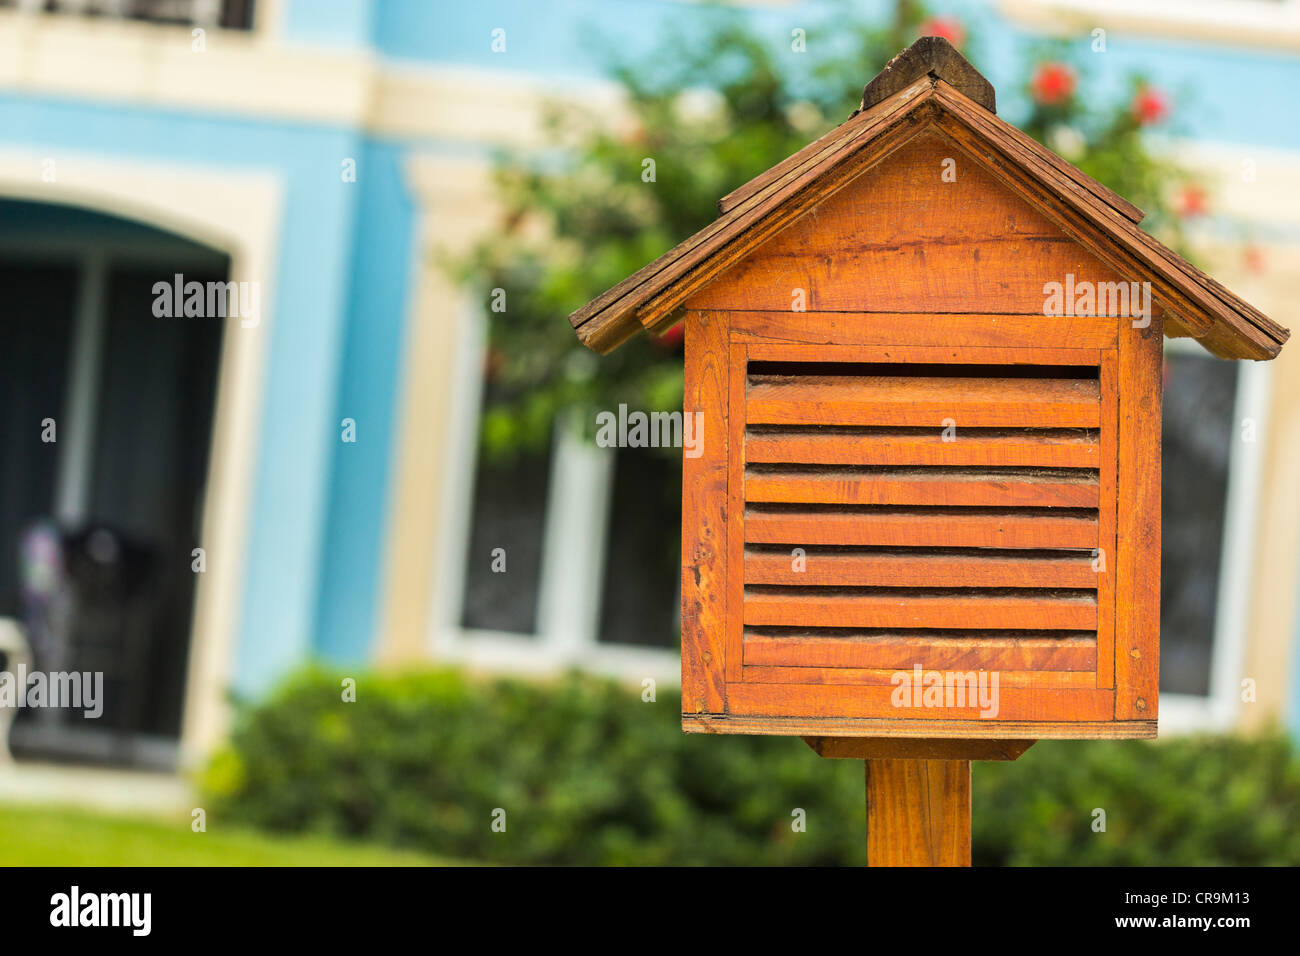 This is a mailbox where you drop your letters into for mailing. Stock Photo